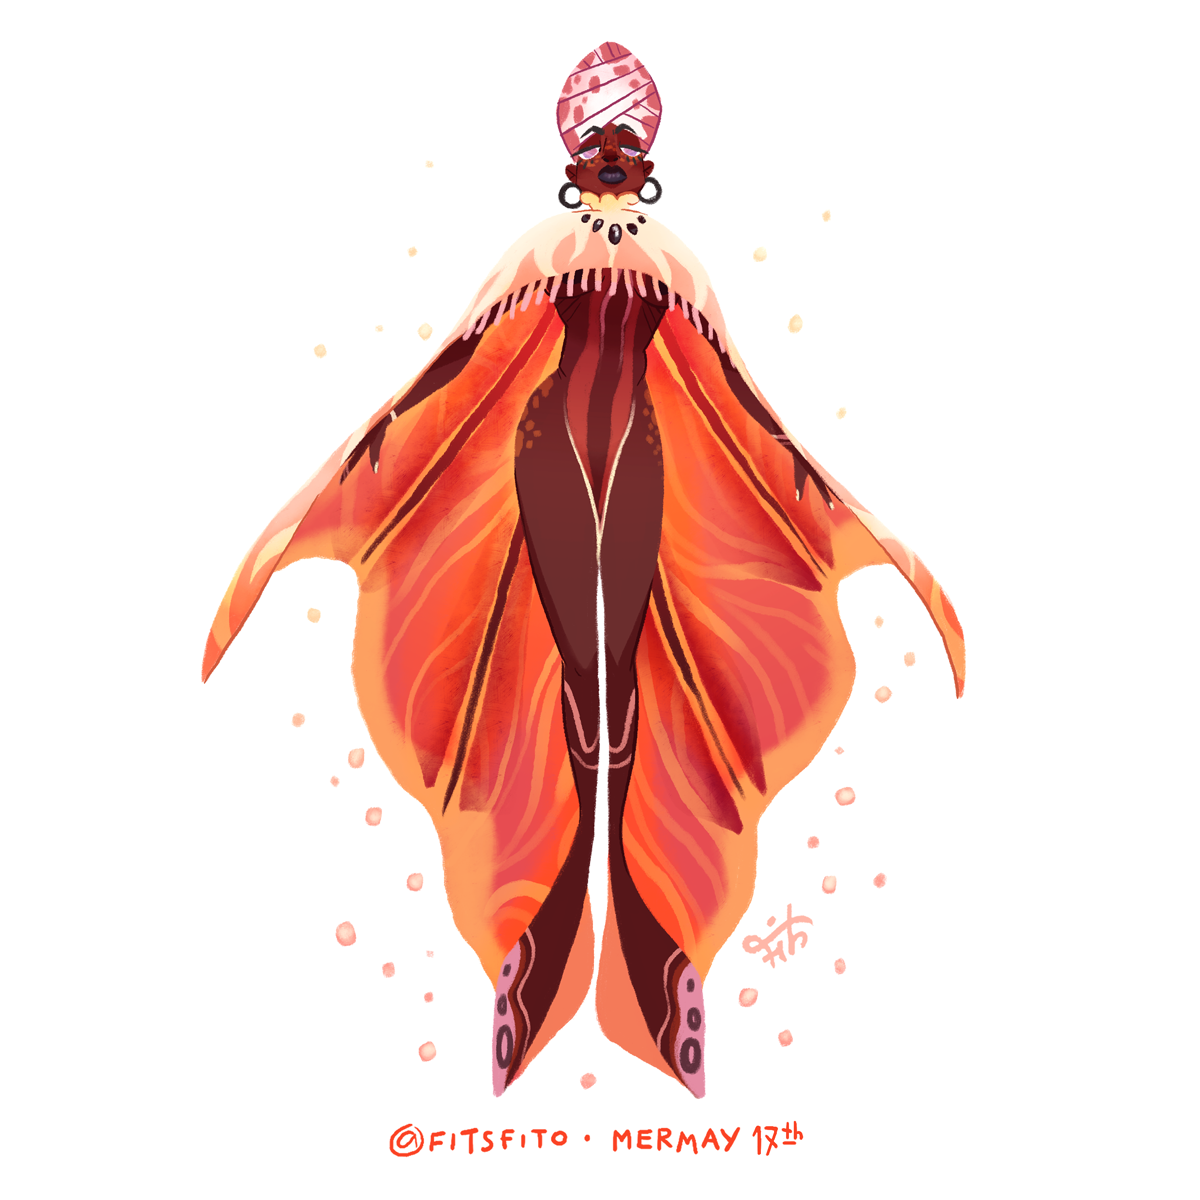 MerMay Day 17 - Sea of fire